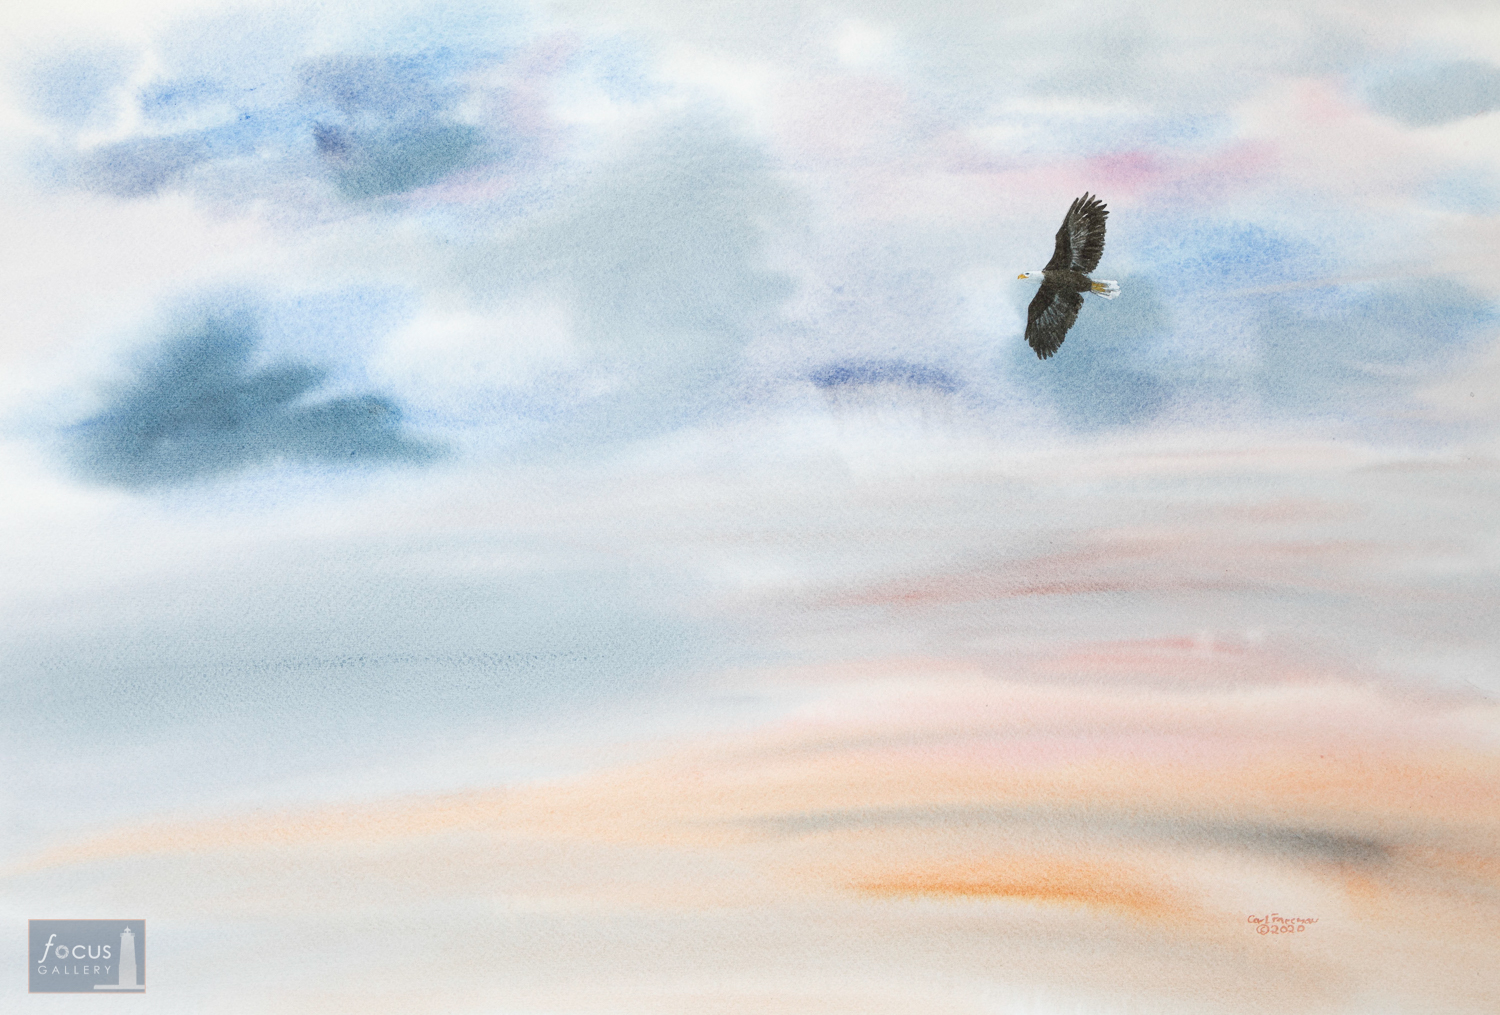 Original Watercolor painting of a Bald Eagle flying in colorful sunset clouds.